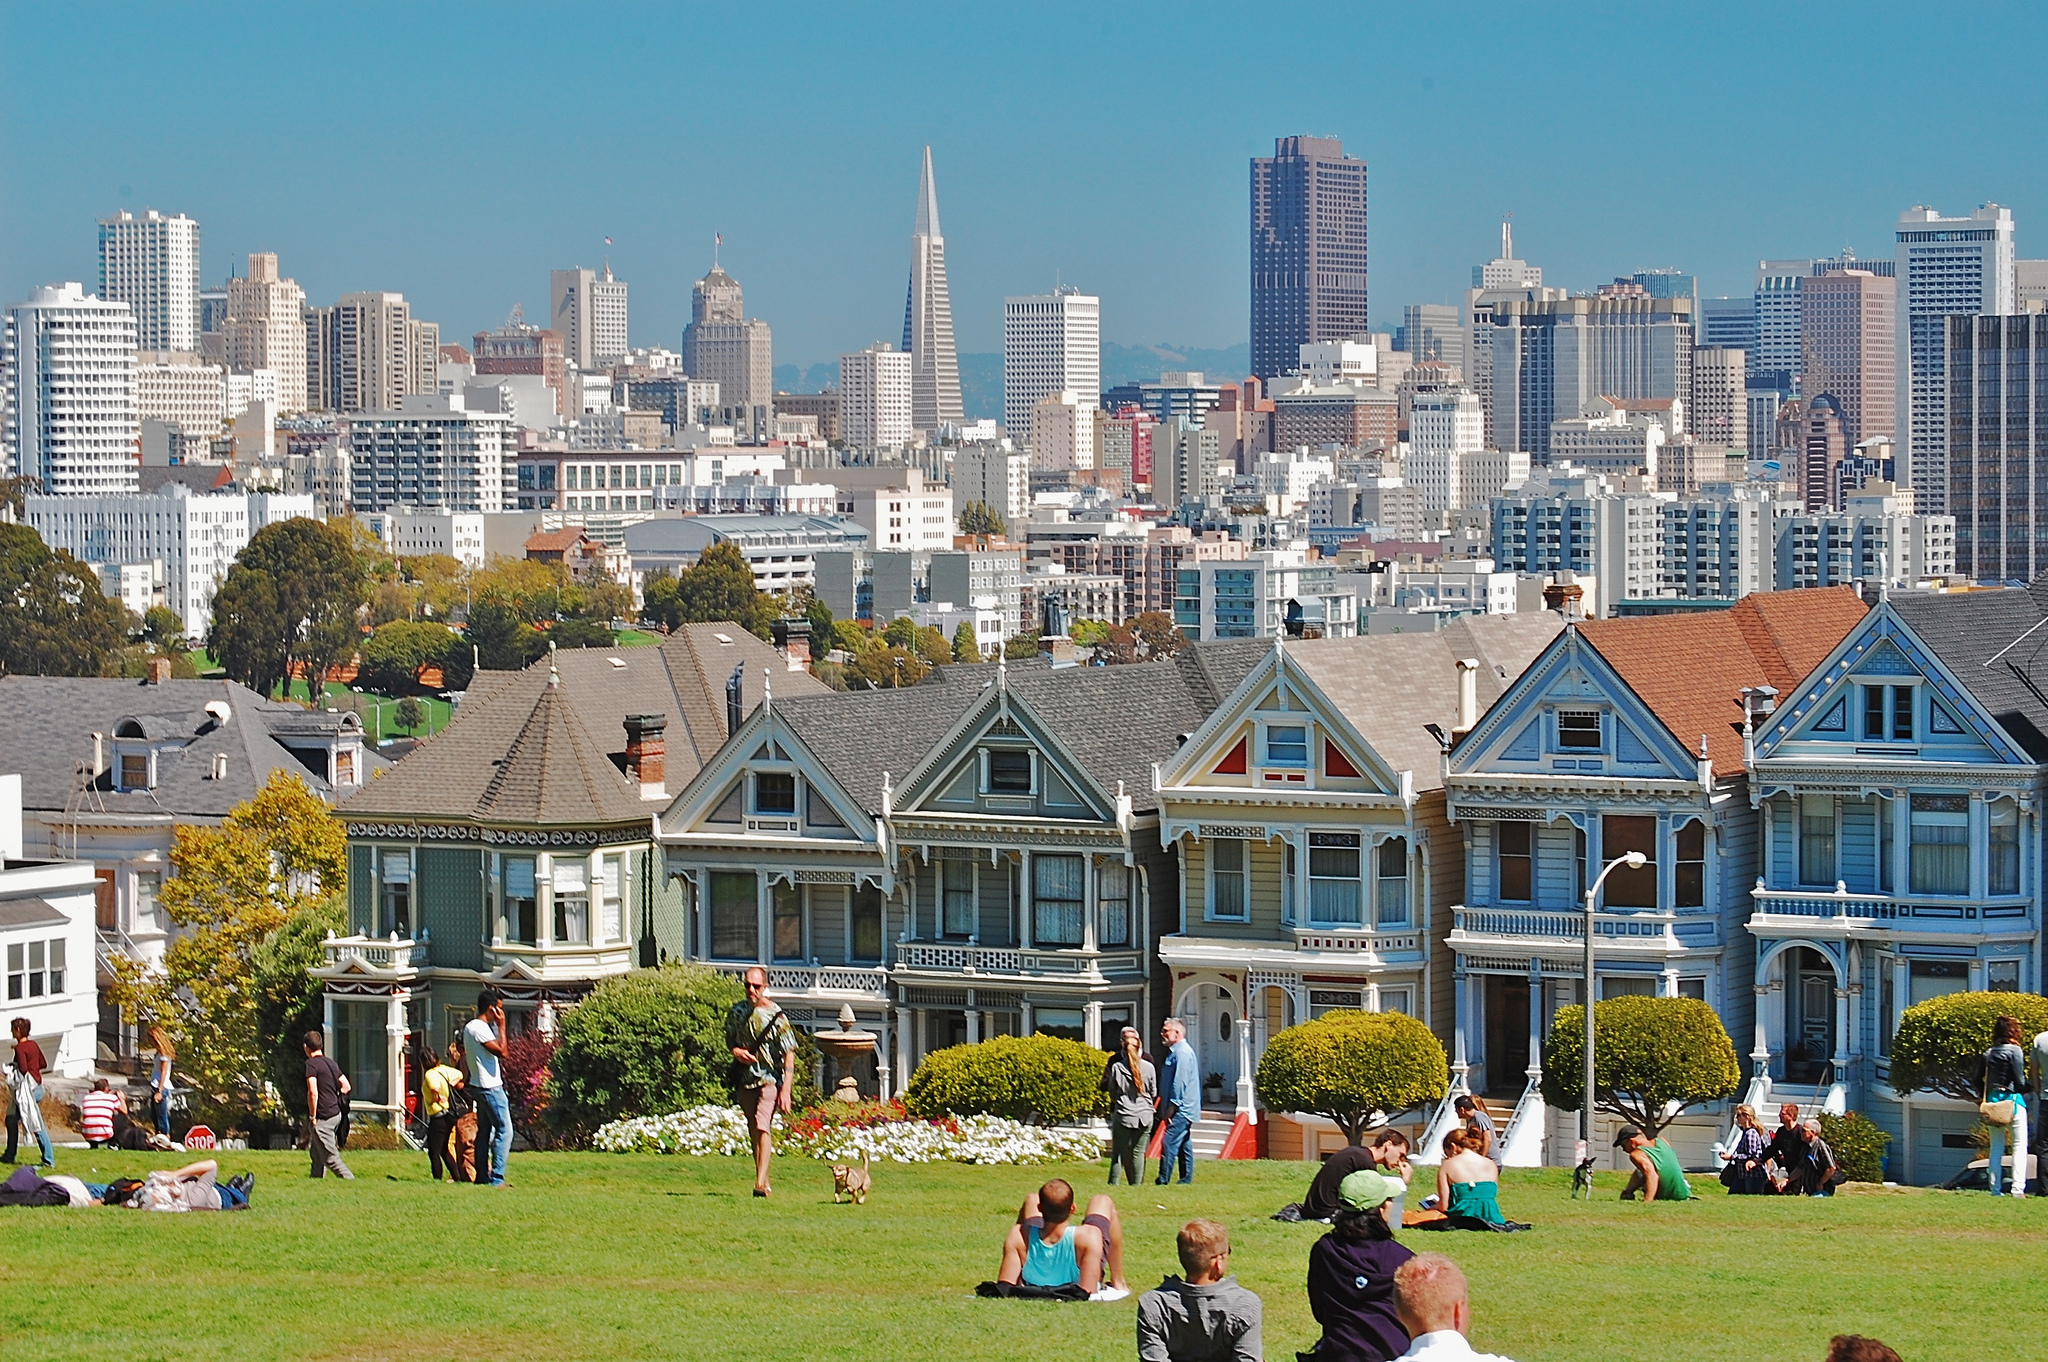 """The famous """"Painted Ladies"""" are a row of beautifully preserved Queen Anne Victorian houses bordering Alamo Square—and one of the most photographed locations in San Francisco."""